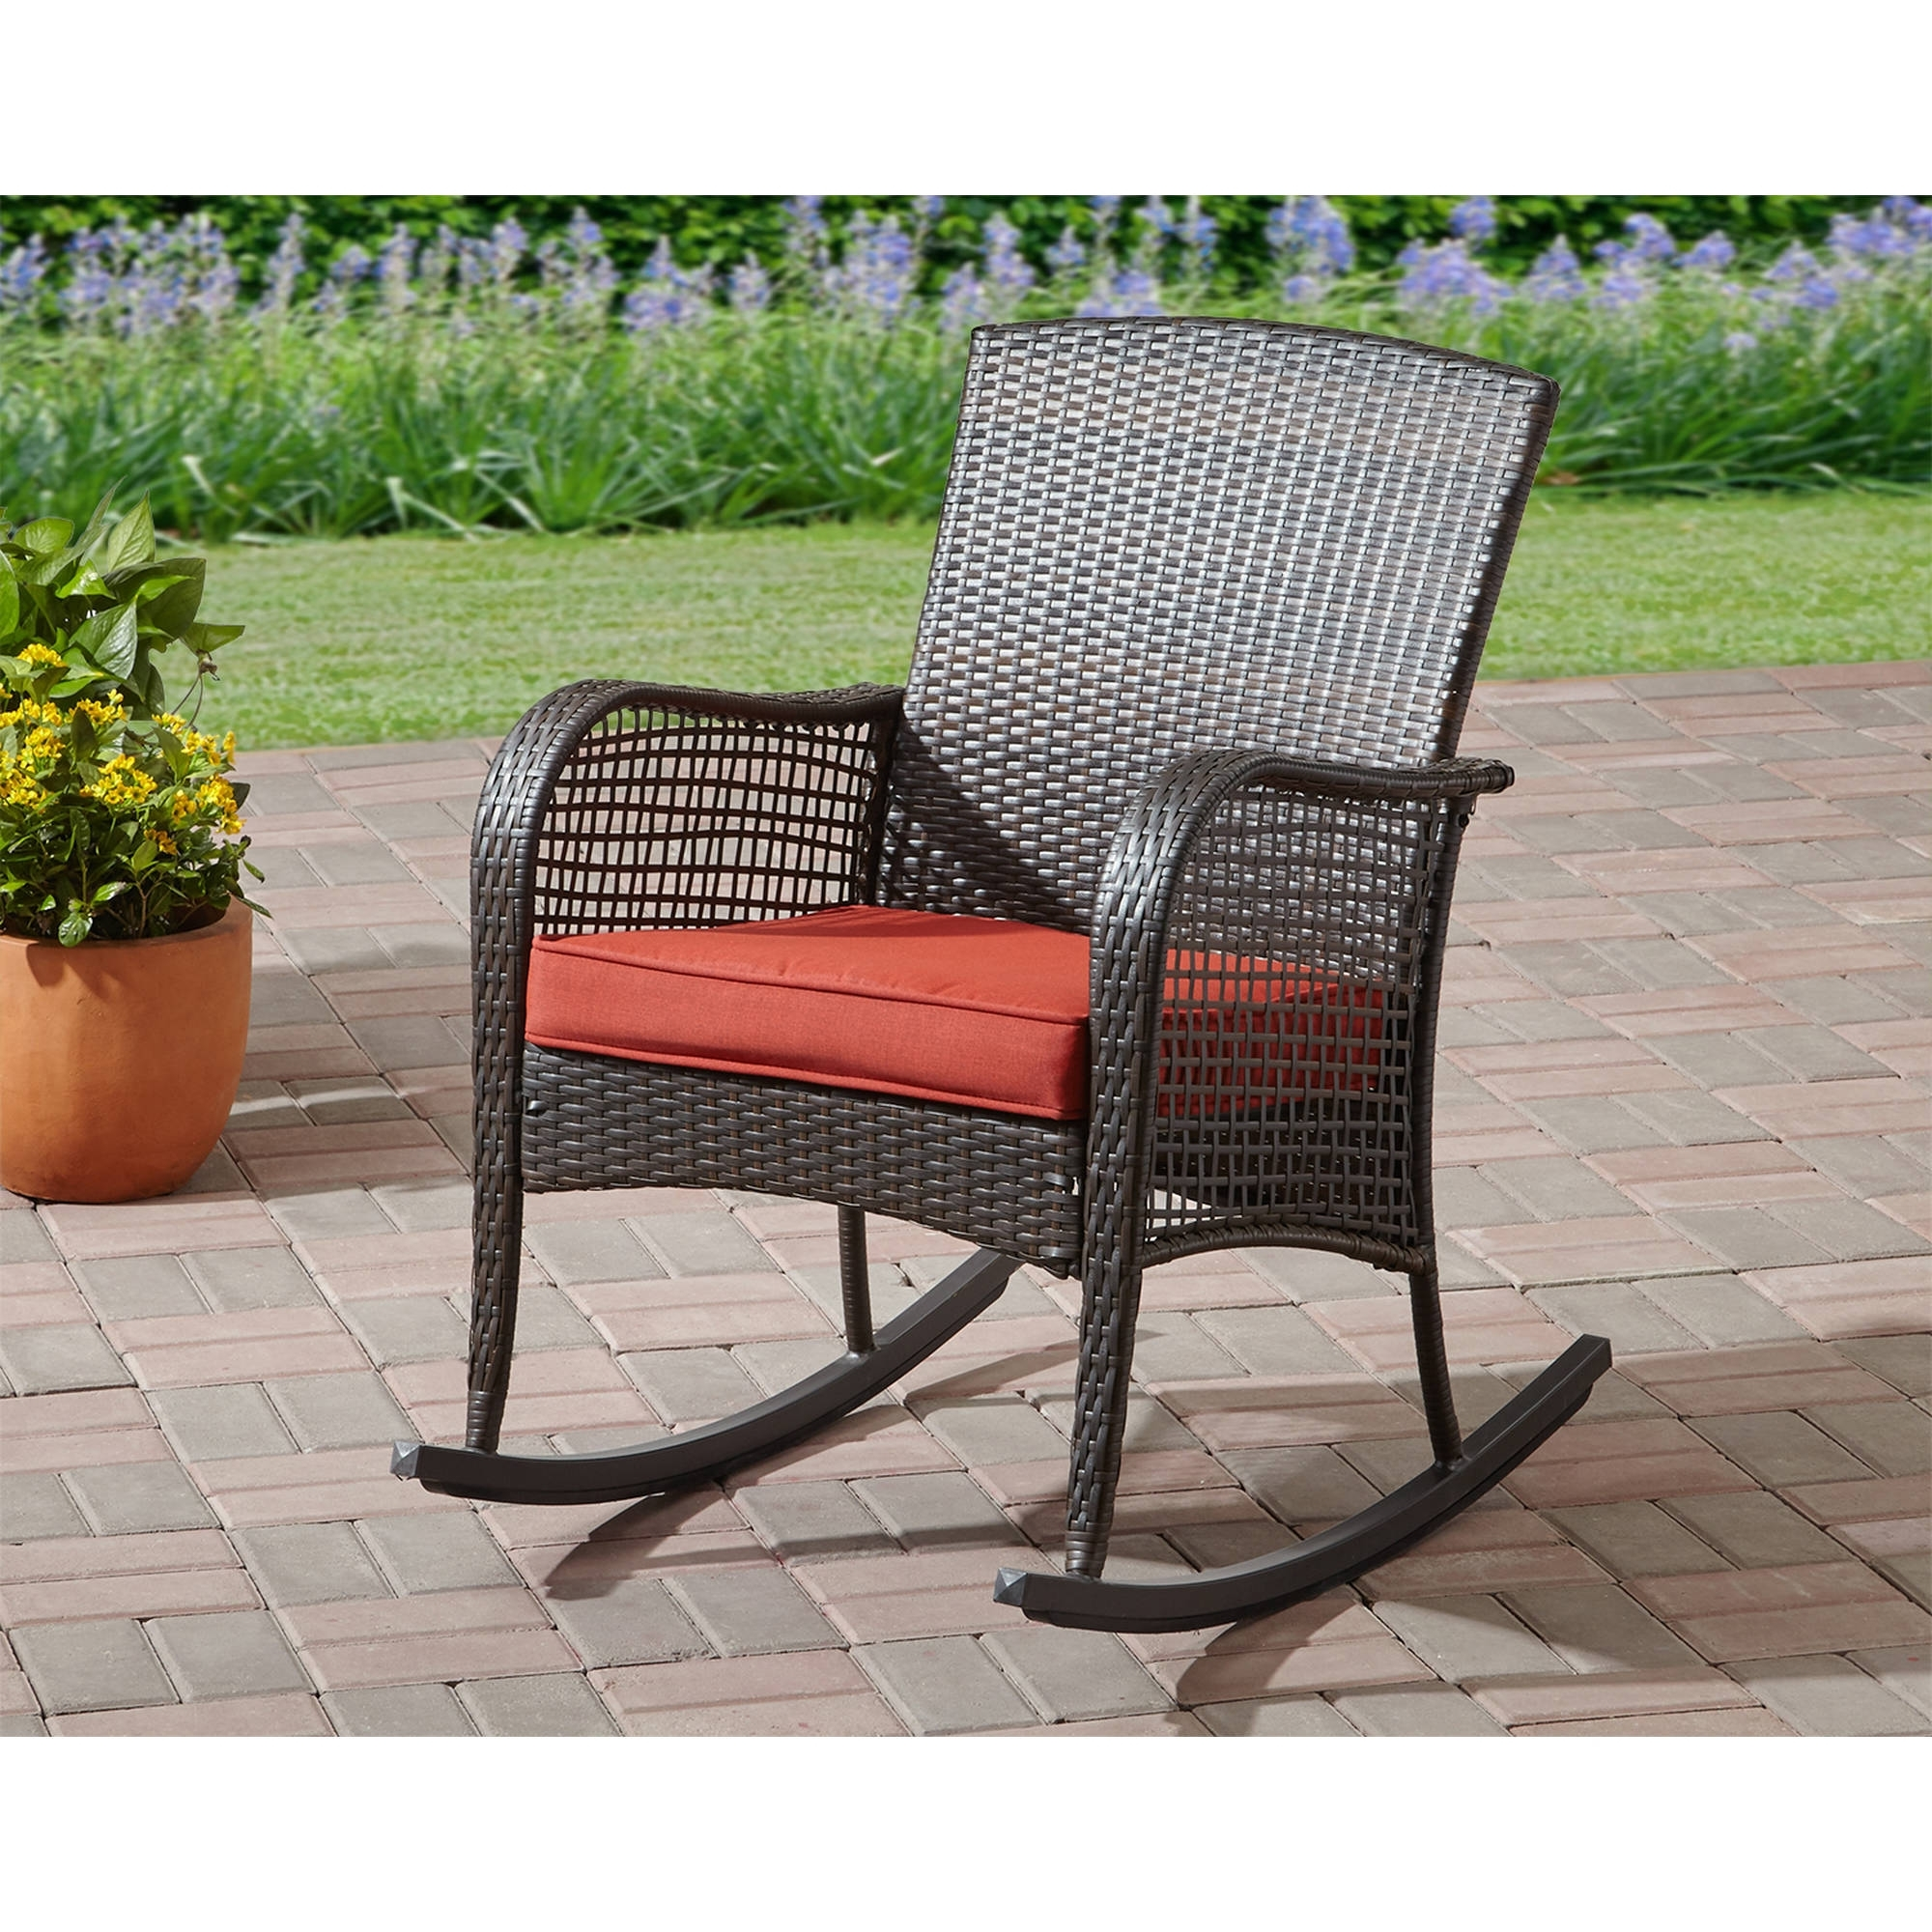 Mainstays Cambridge Park Wicker Outdoor Rocking Chair – Walmart Intended For Best And Newest Inexpensive Patio Rocking Chairs (View 8 of 20)